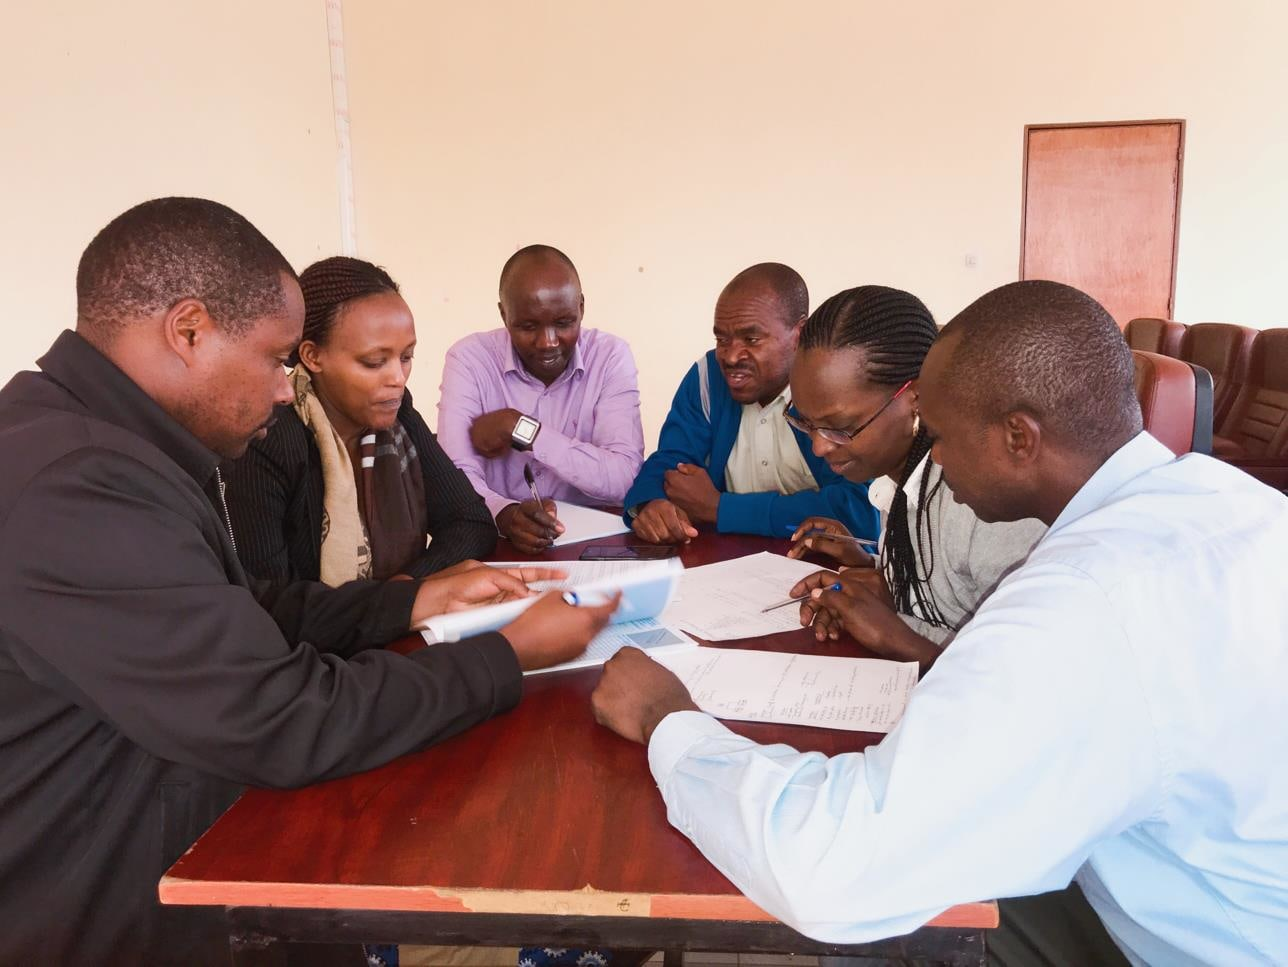 MHA students at the University of Rwanda put their heads together and apply their problem solving skills.